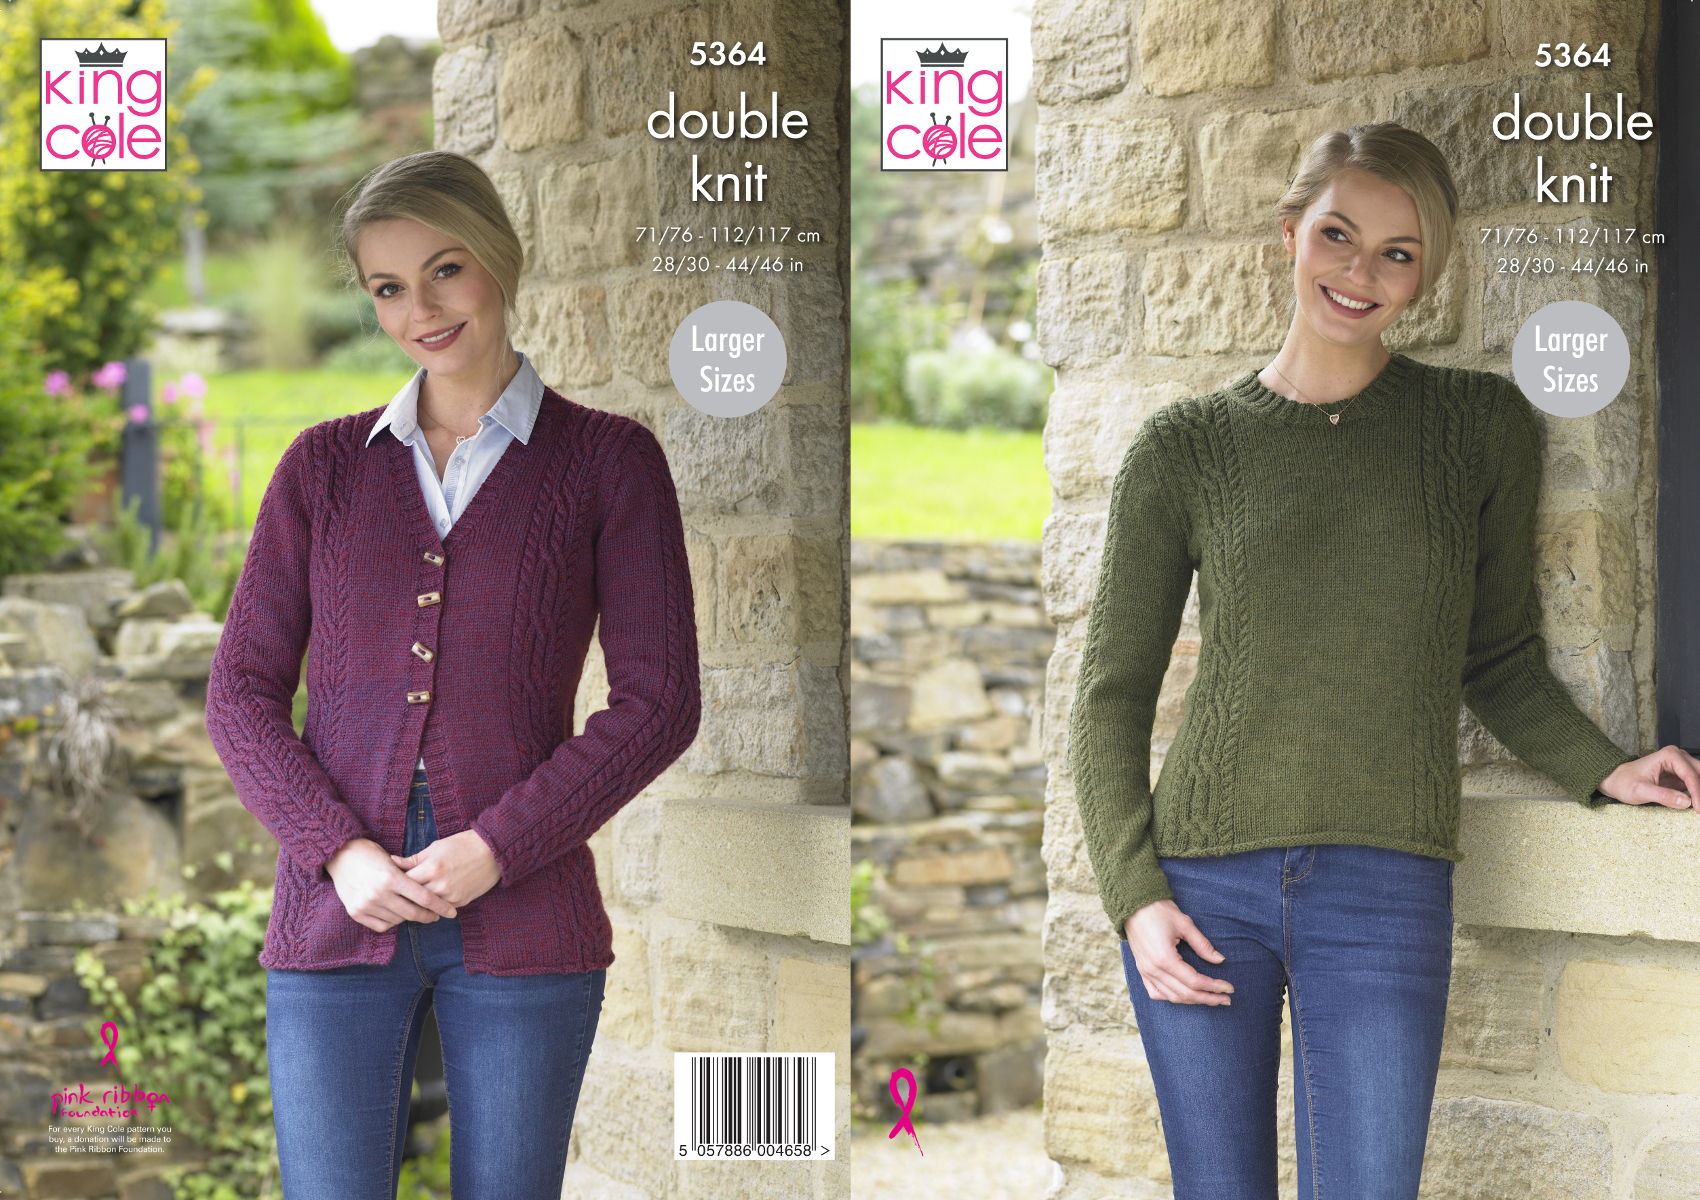 Knit Cardigan Pattern Details About King Cole Ladies Double Knitting Pattern Womens Cable Knit Cardigan Sweater 5364